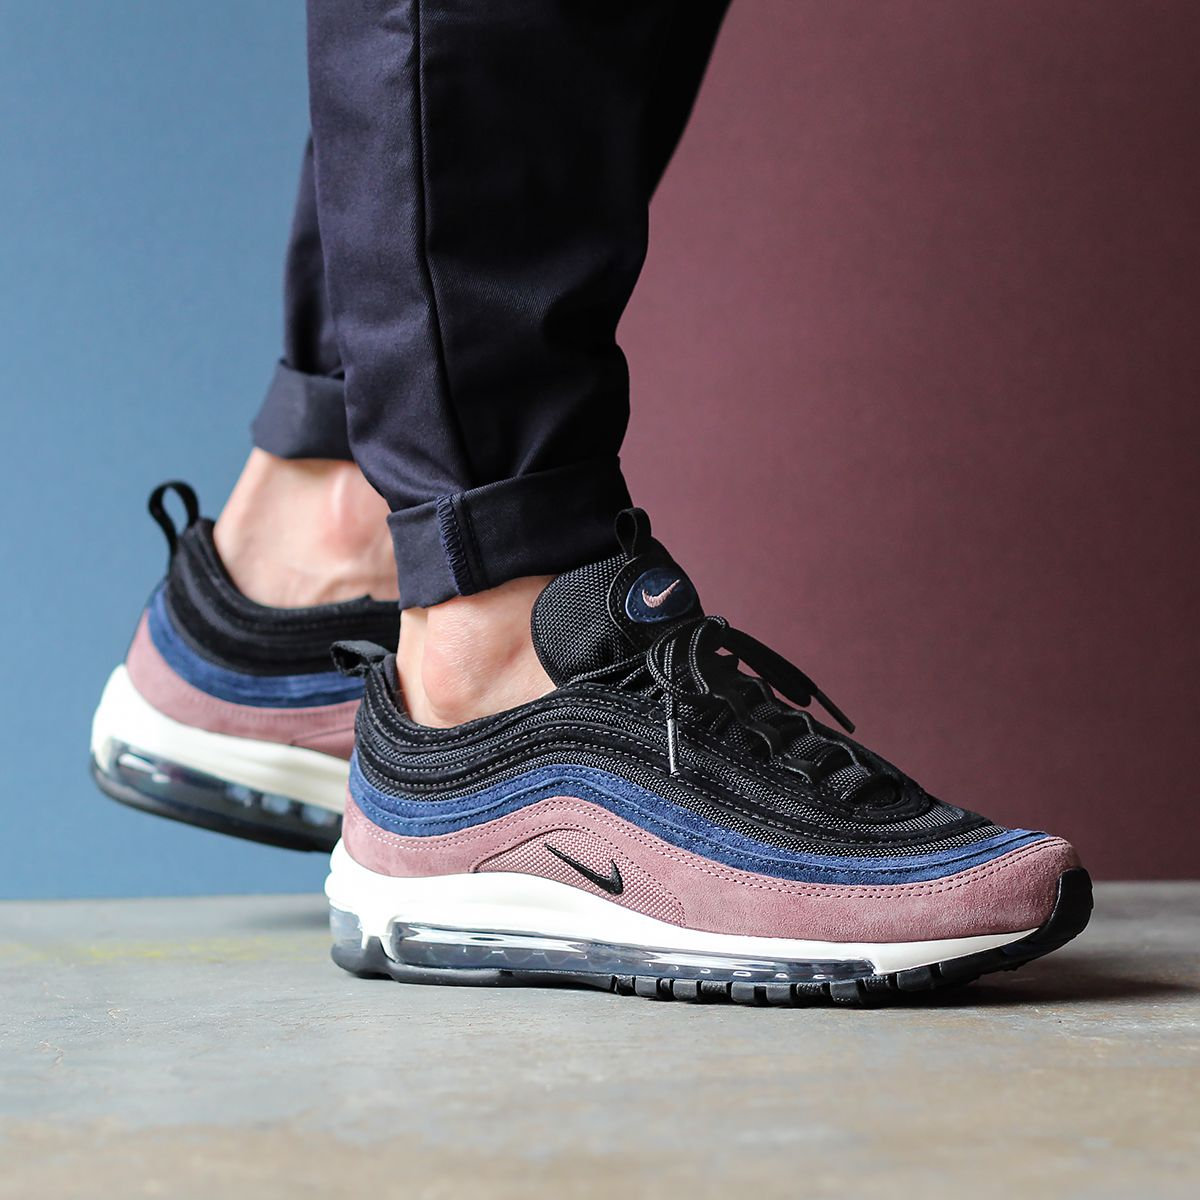 Nike Air Max 97 | best sneakers in 2019 | Nike air max mens